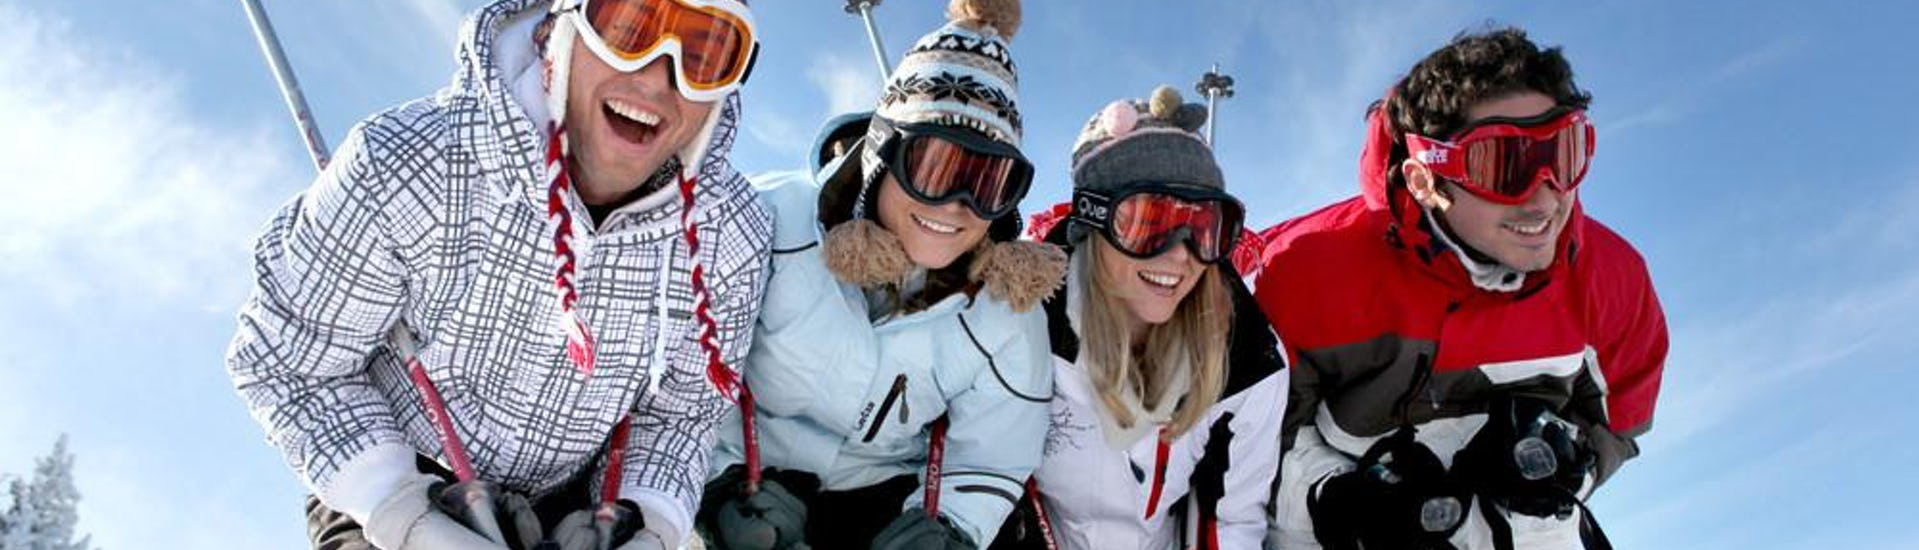 Adult ski group smiling to the camera